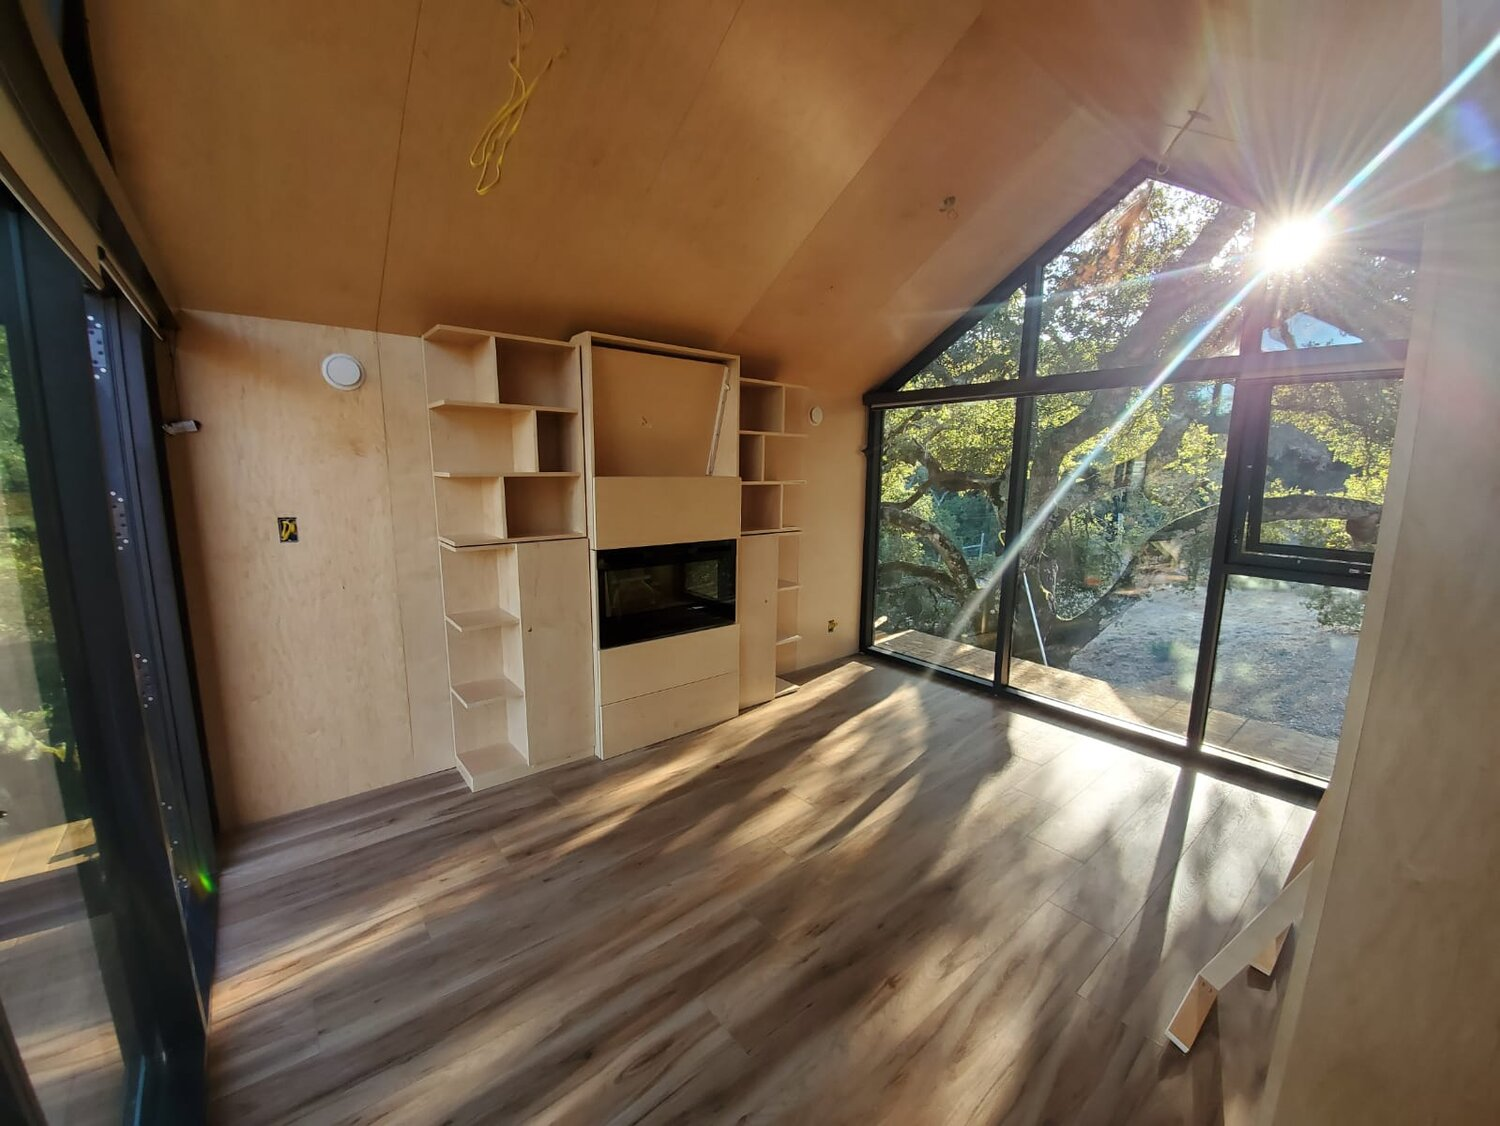 Interior image of a 170 sqft Deluxe Extended Monarch Bunkie